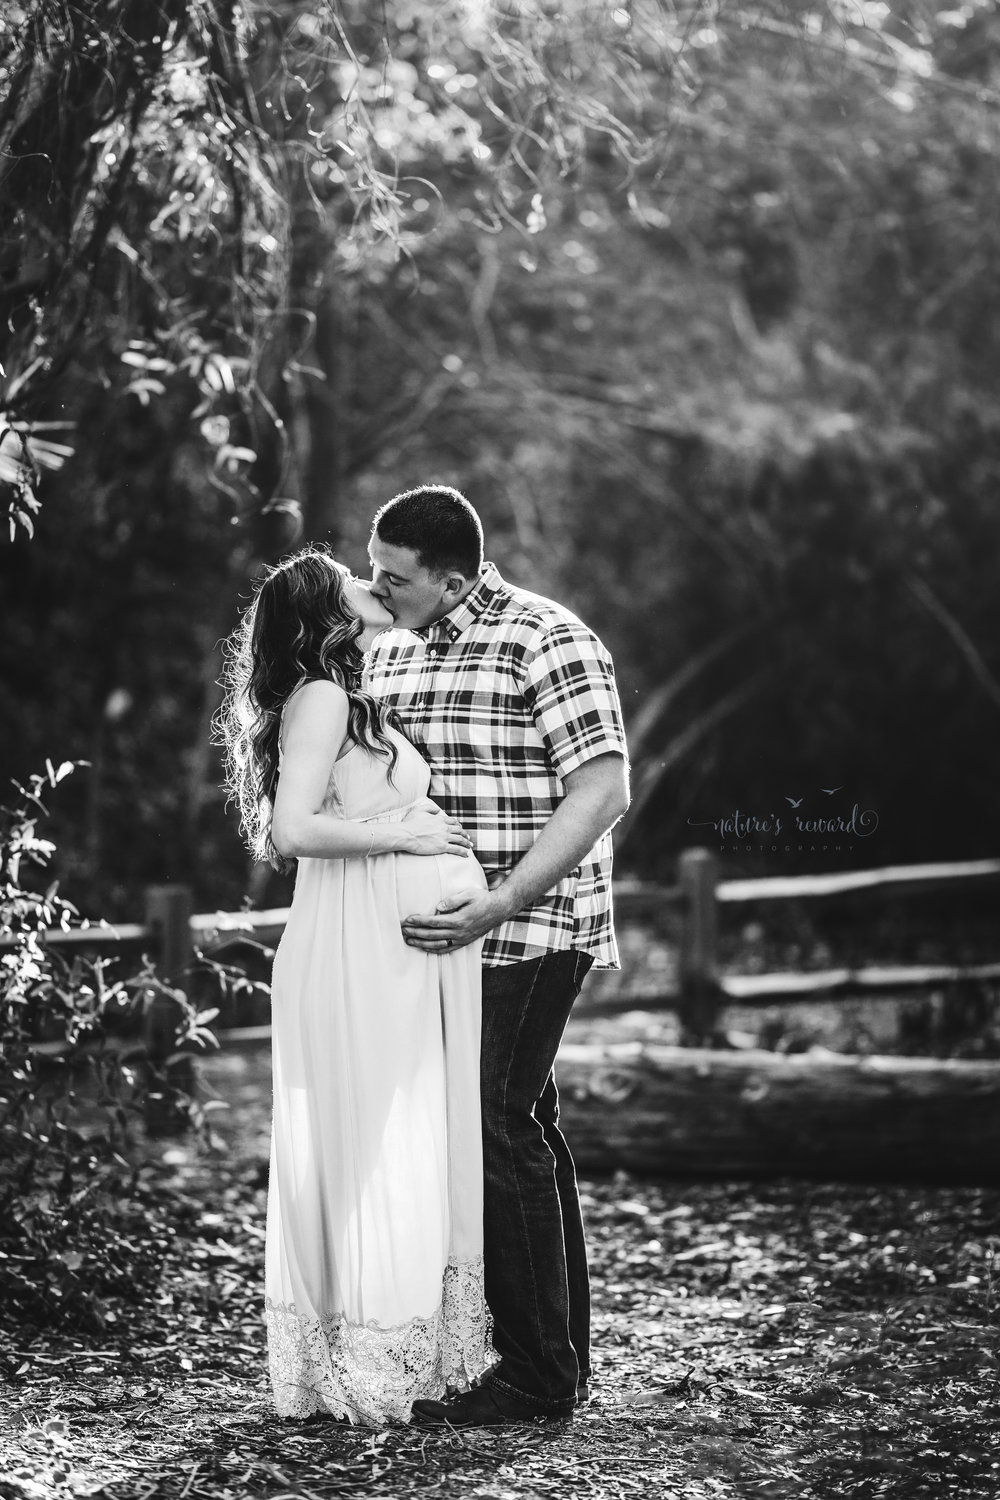 Beautiful expecting mother in a blue maternity gown with her husband in jeans and a blue plaid button down shirt in beautiful light, embrace, in a park setting in this black and white maternity portrait taken by Nature's Reward Photography.